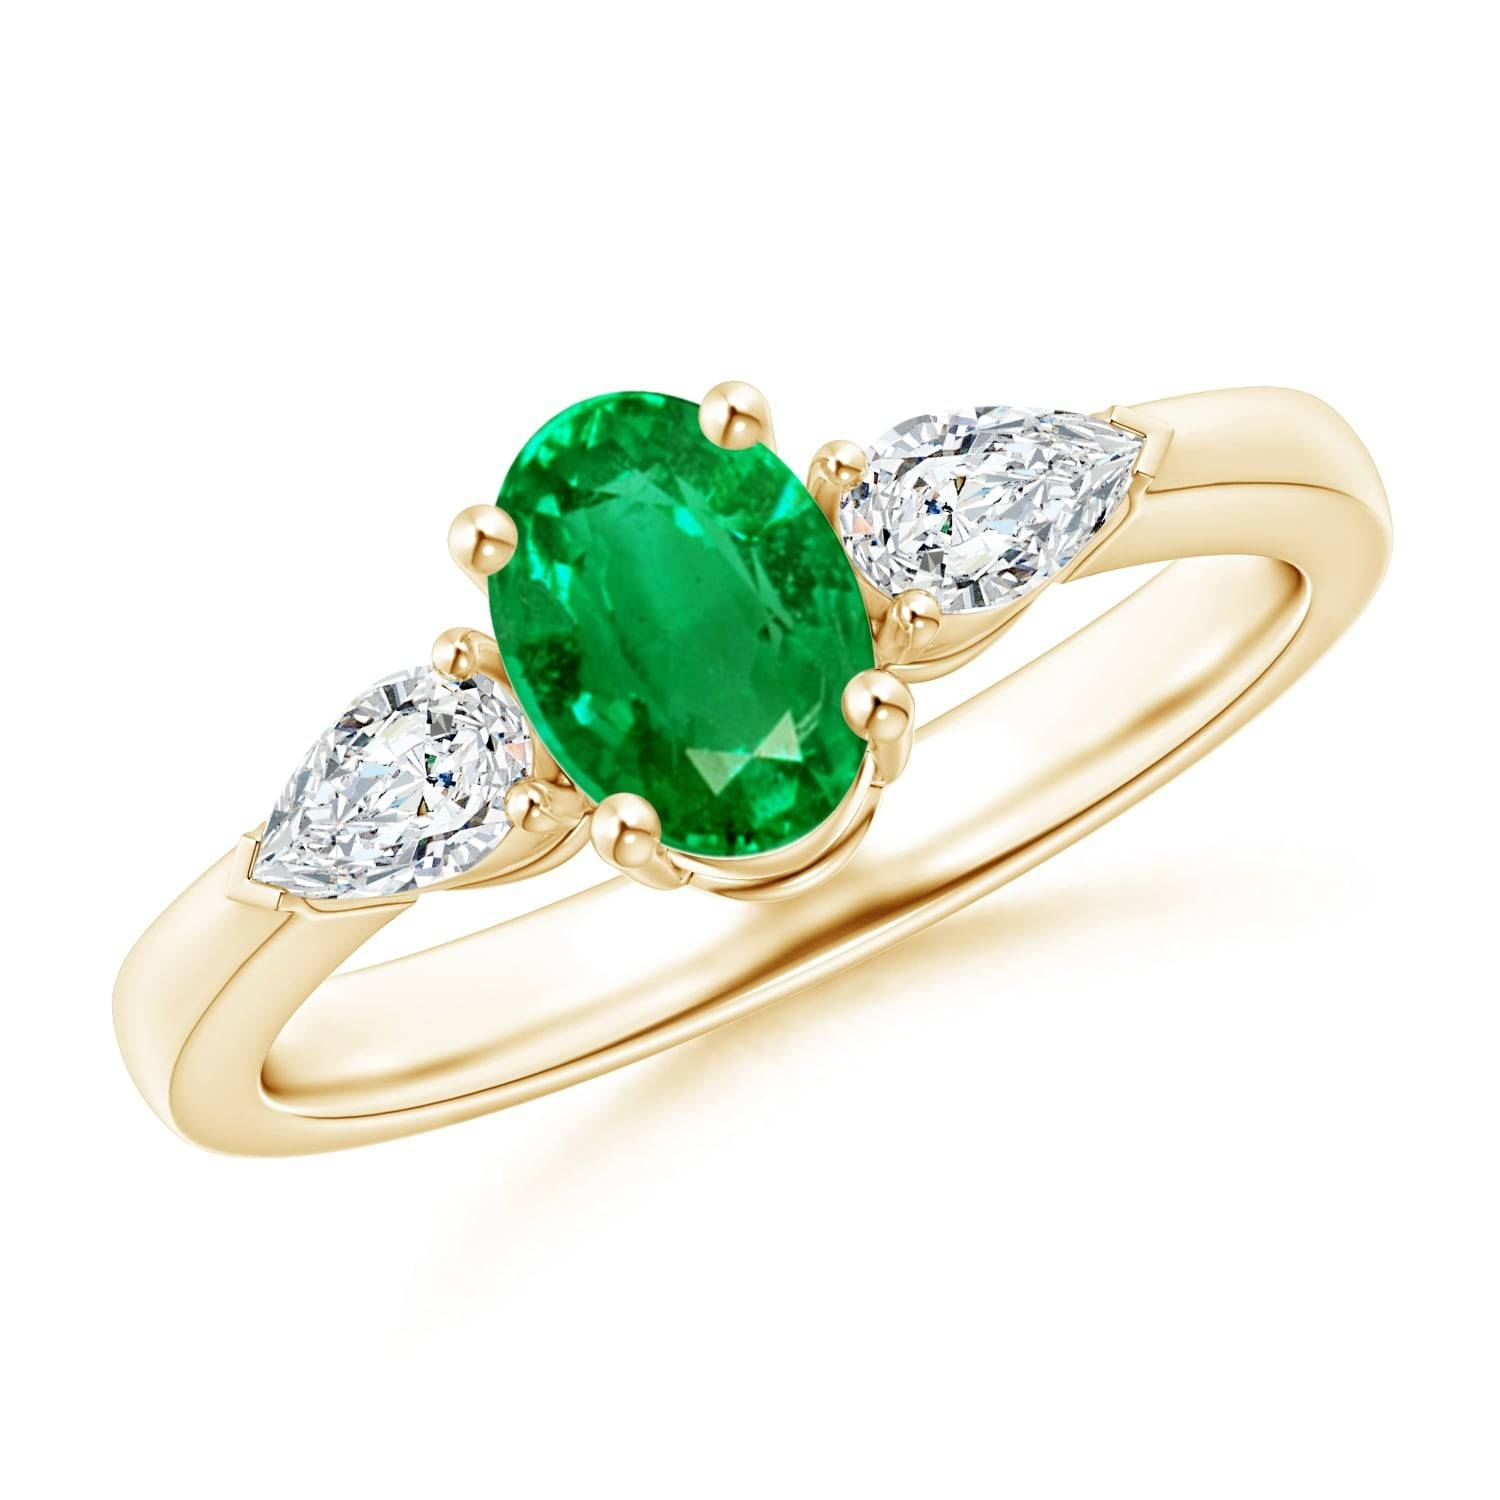 Four Prong Three Stone Oval Emerald And Diamond Ring | Angara Intended For Oval Emerald Engagement Rings (View 3 of 15)